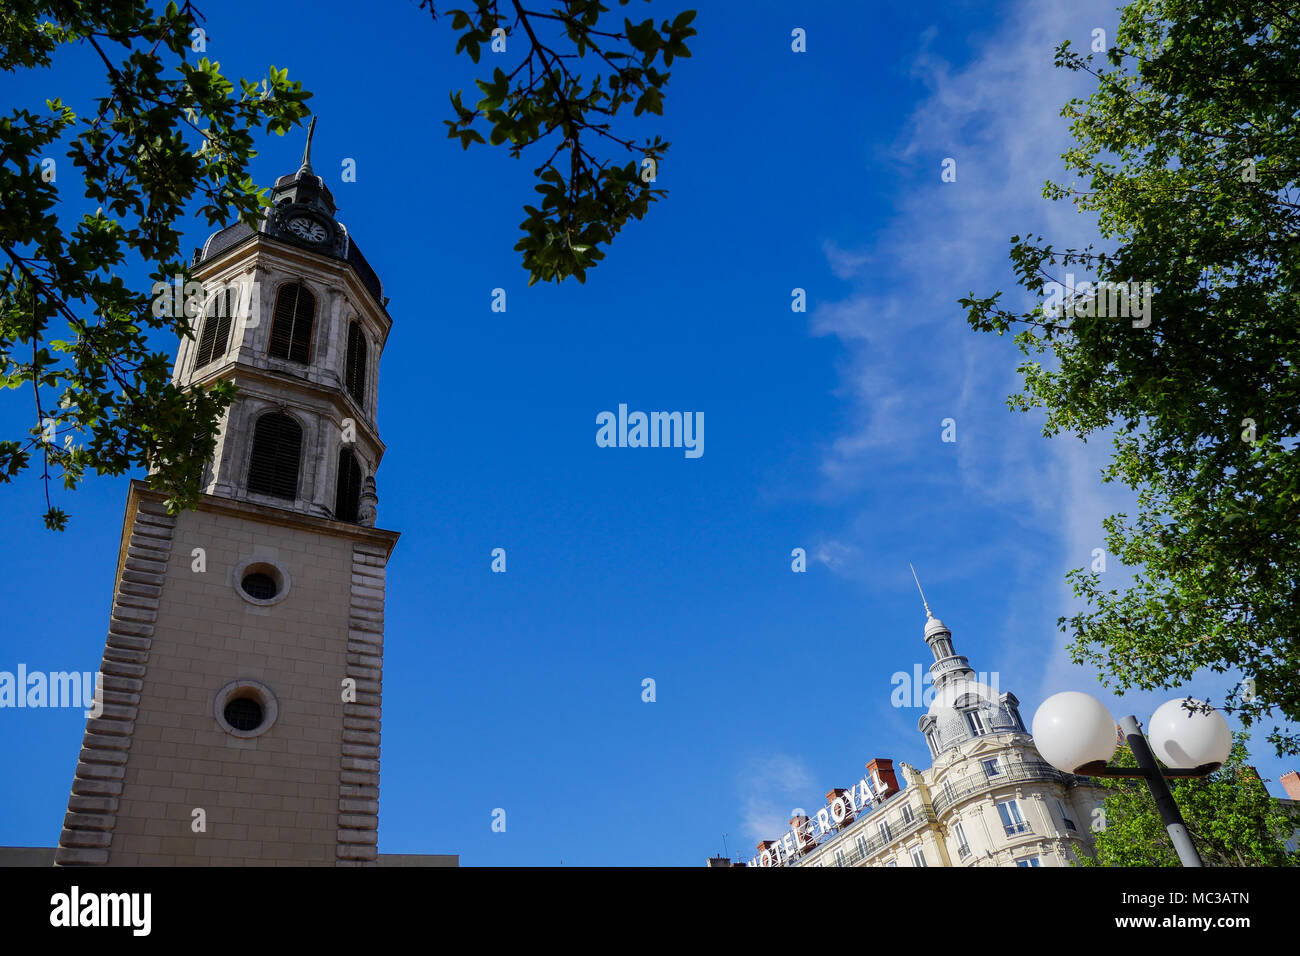 Charity Bell Tower and Hotel Royal, Antonin Poncet square, Lyon, France - Stock Image